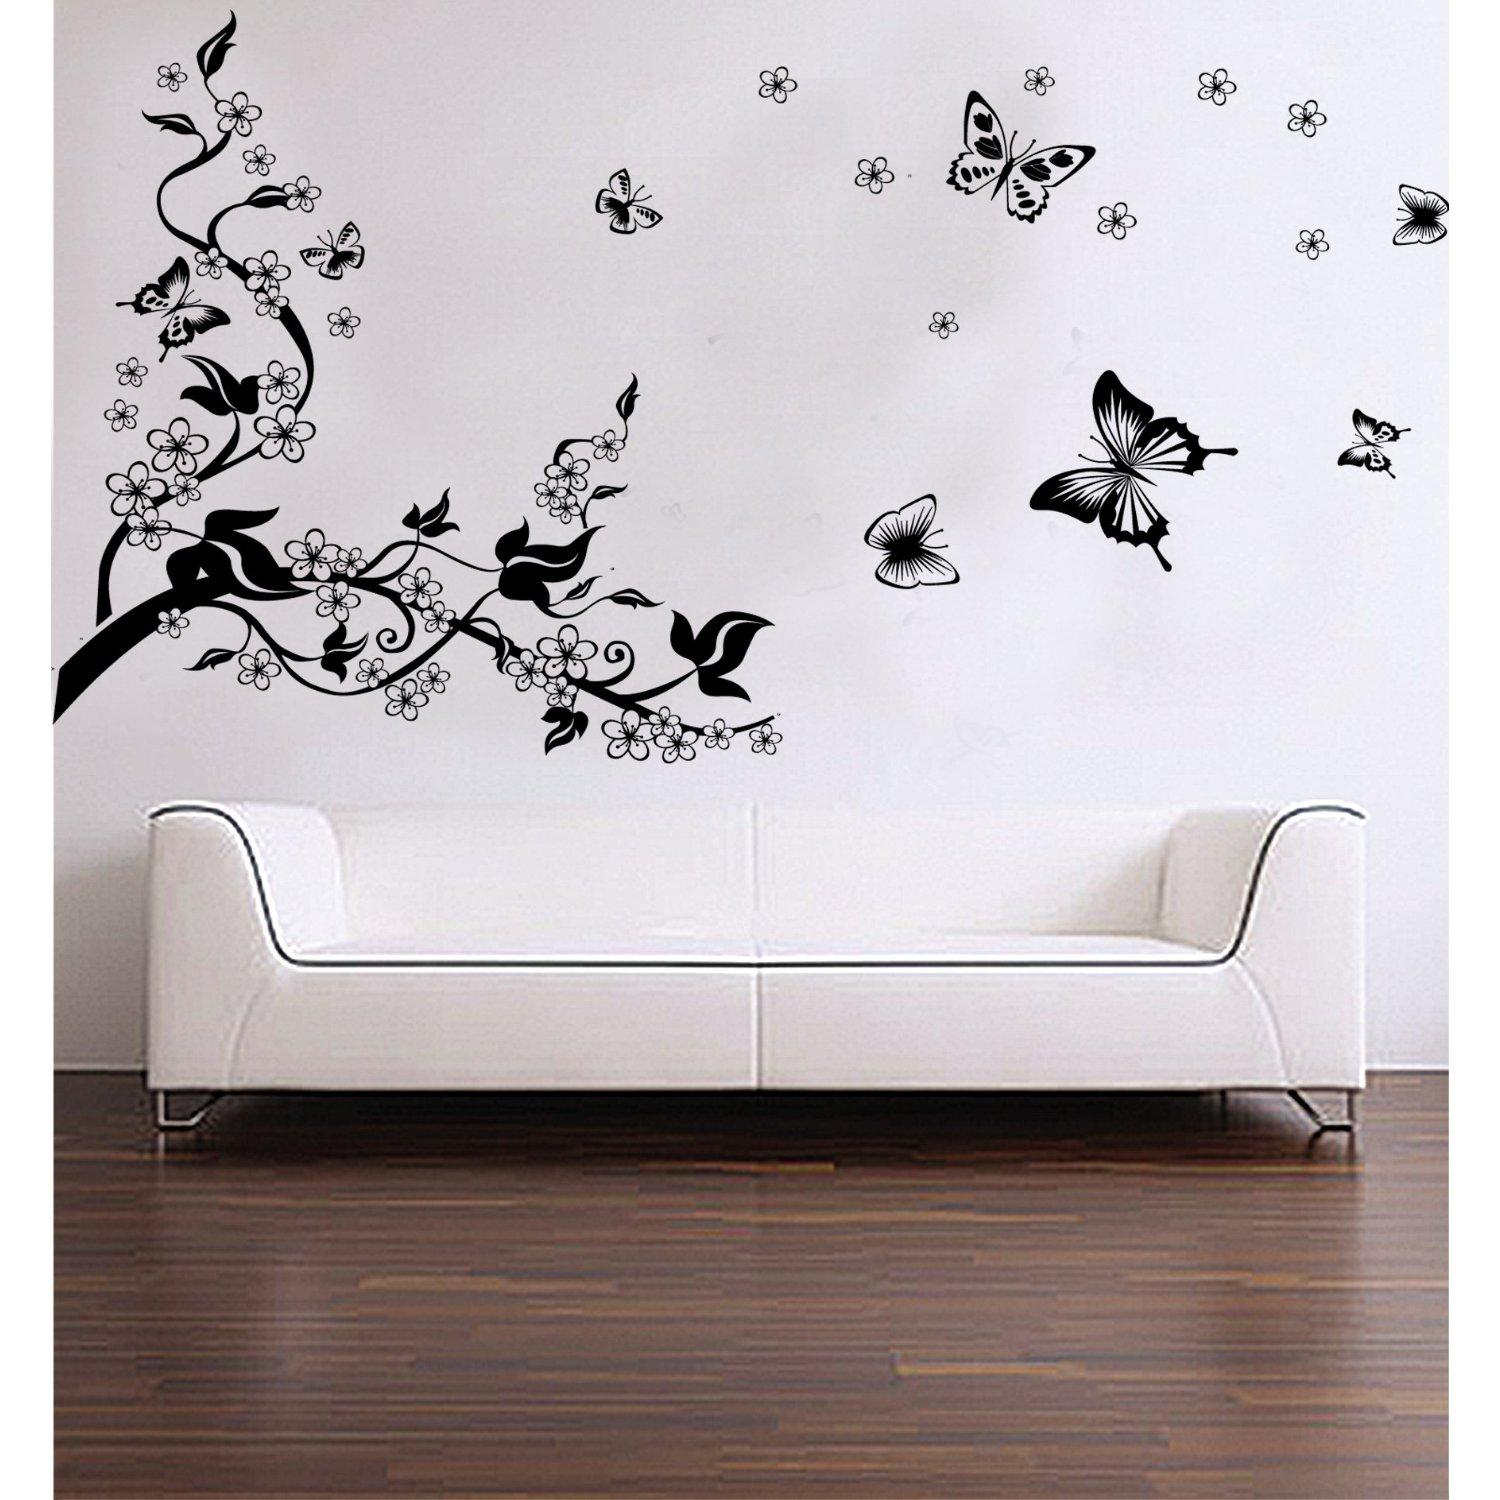 35 abstract wall decals inspirations godfather style for Vinyl wallpaper for walls